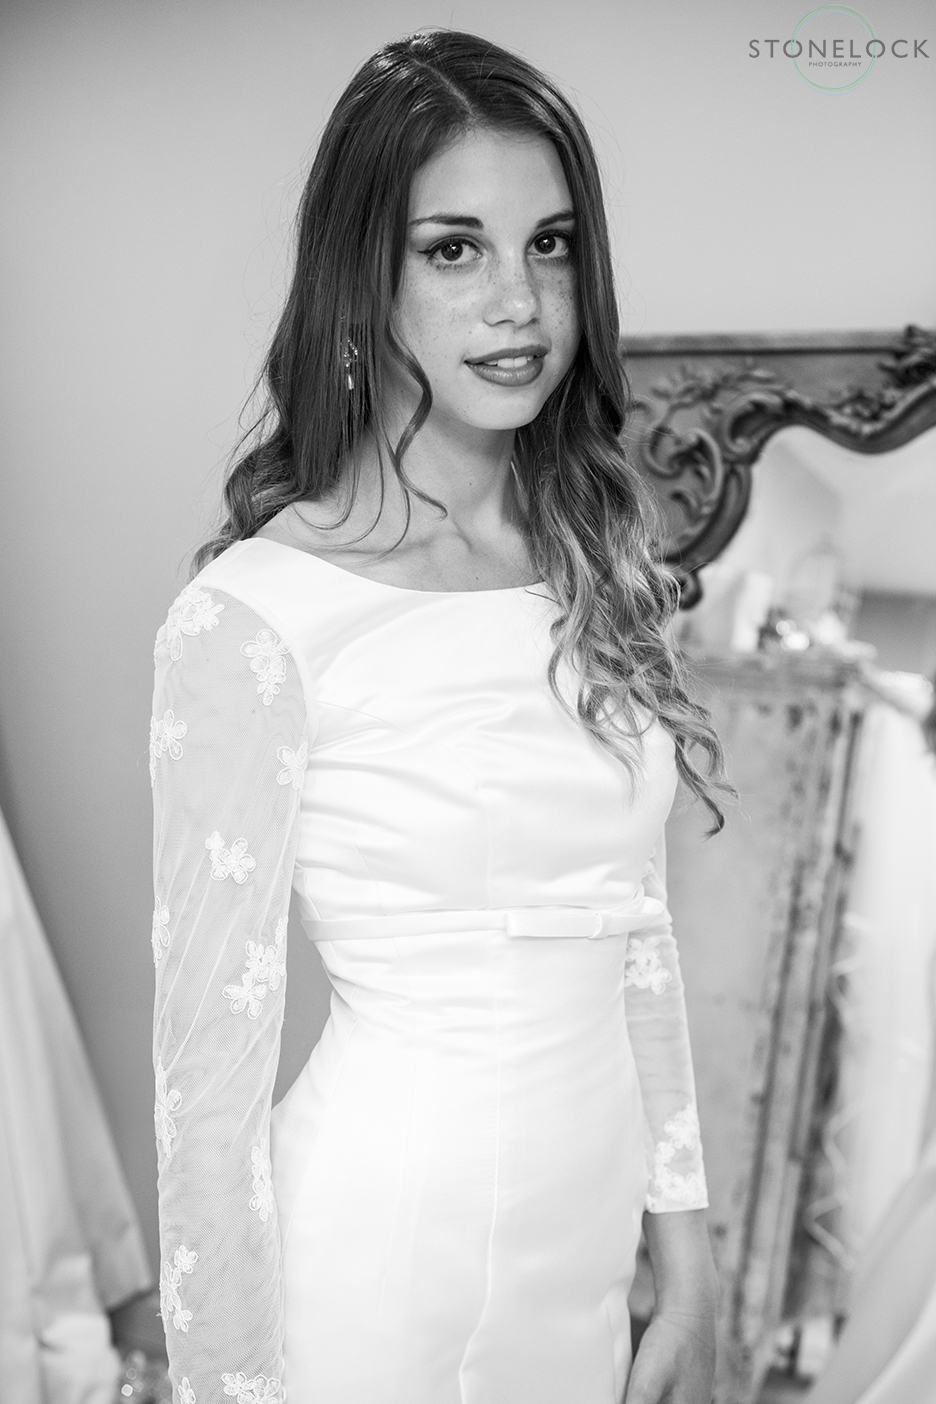 A model wears Lou Lou emilia, long sleeve wedding dress at Helena Fortley Bridal Boutique in Caterham, Surrey. The photo is in black and white.